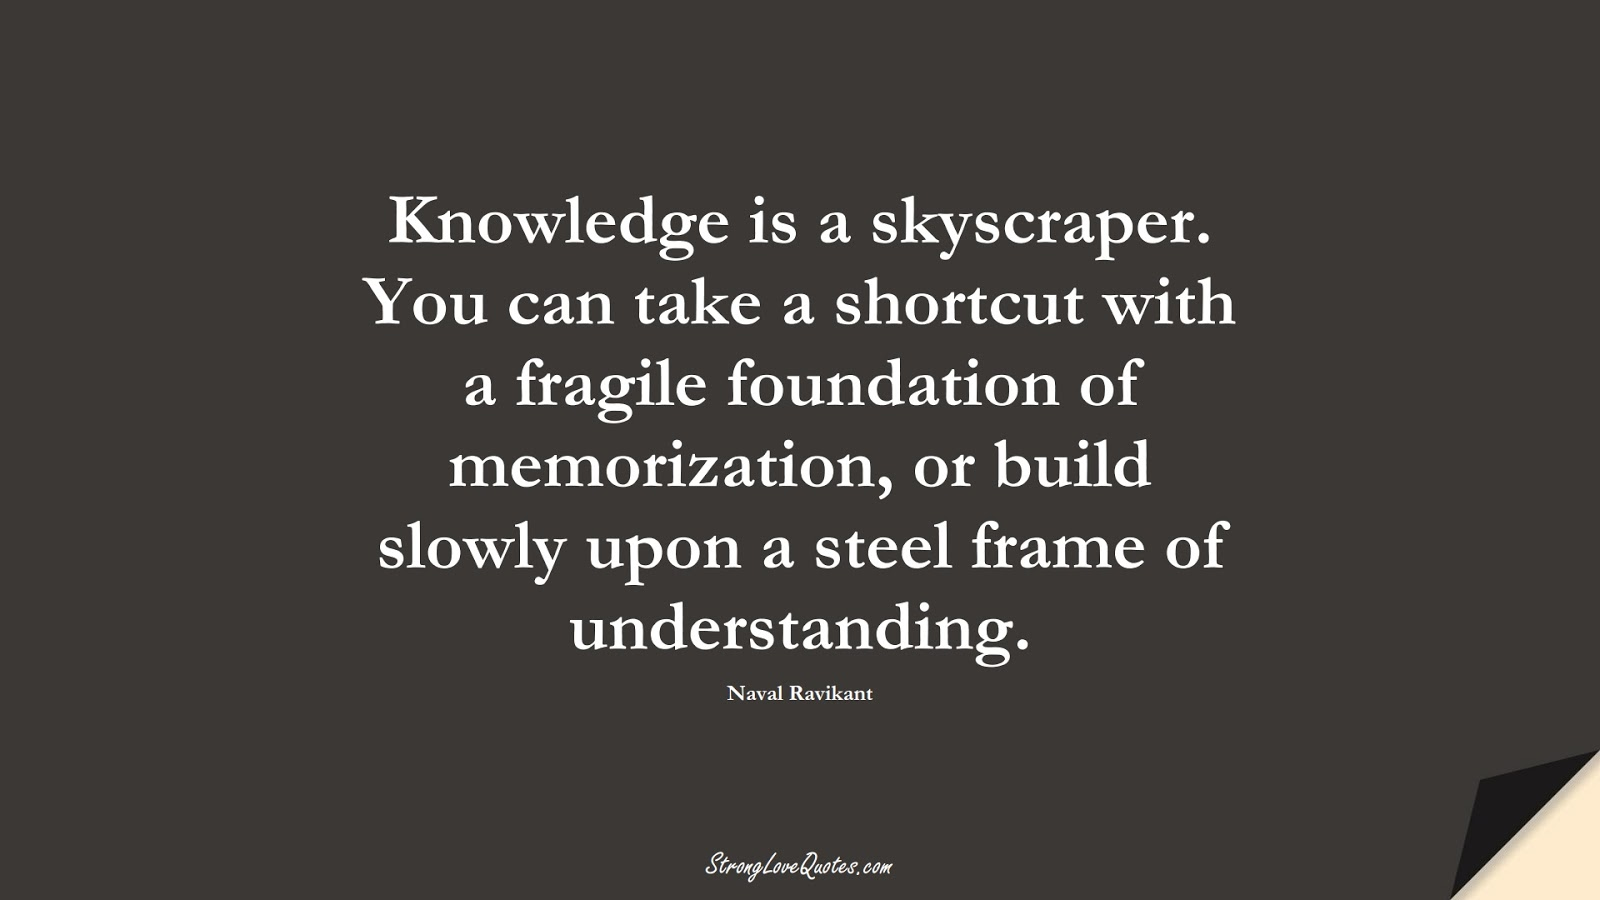 Knowledge is a skyscraper. You can take a shortcut with a fragile foundation of memorization, or build slowly upon a steel frame of understanding. (Naval Ravikant);  #KnowledgeQuotes